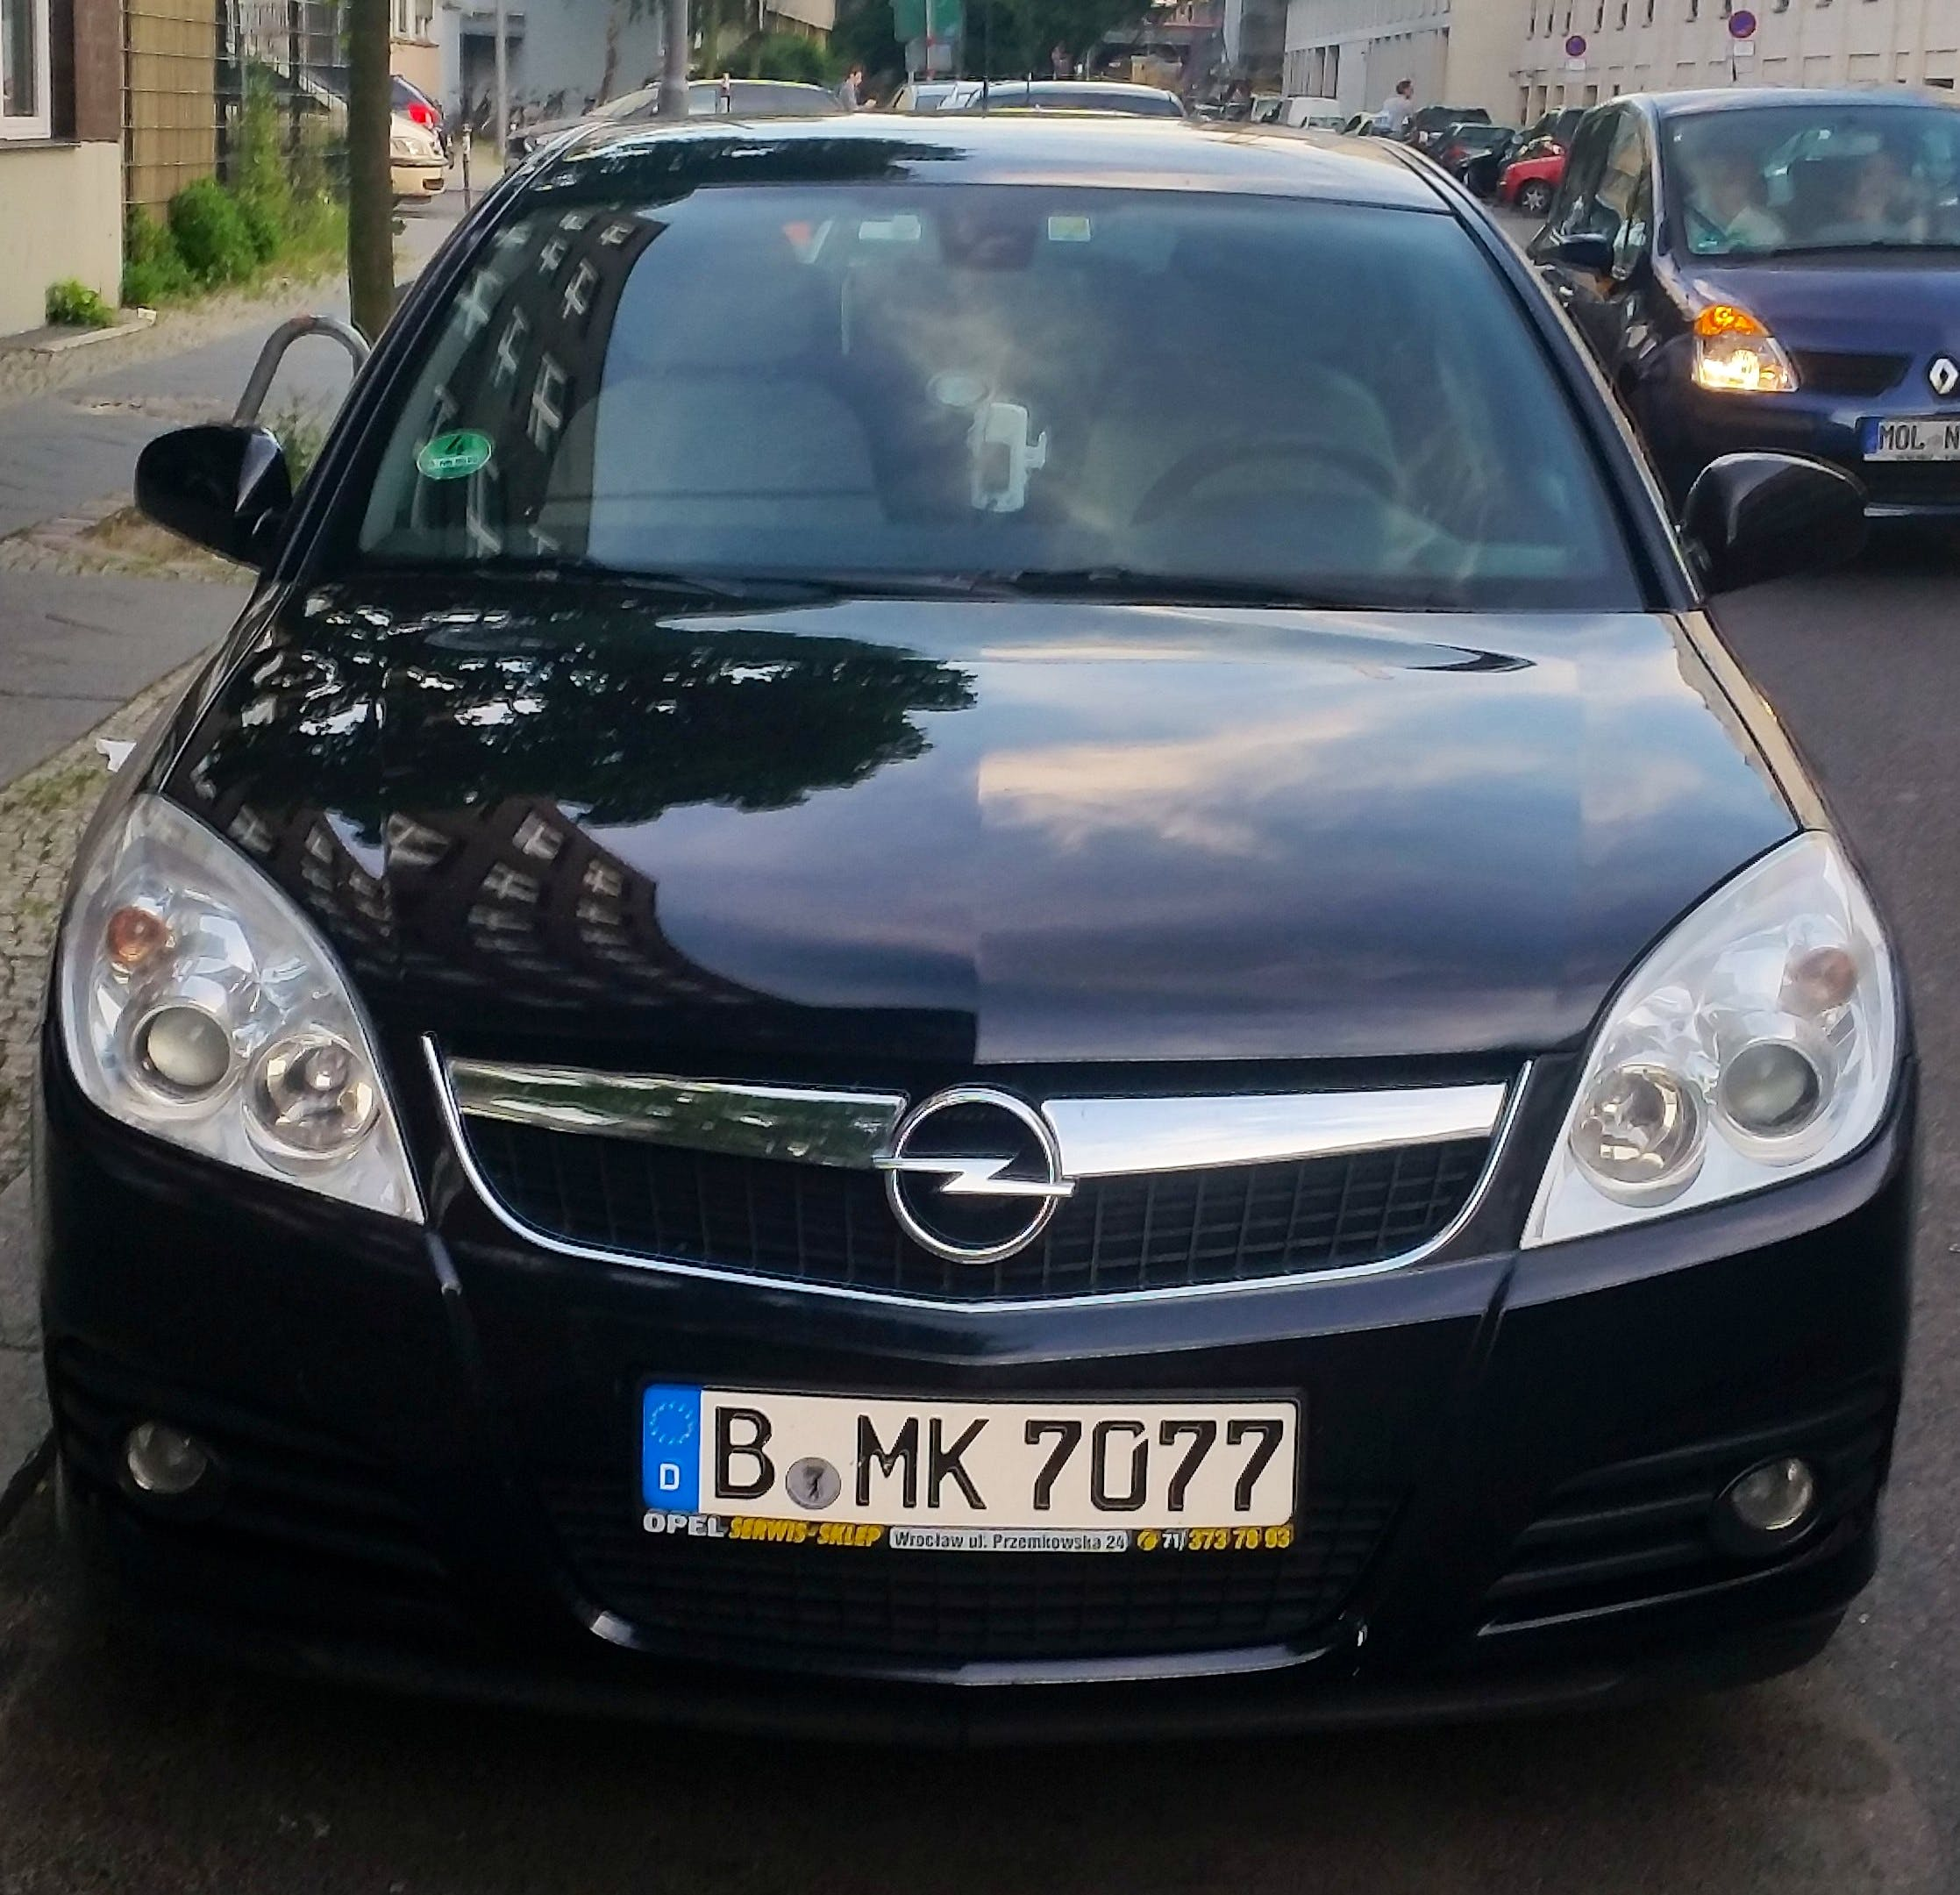 Opel Vectra mit CD-Player